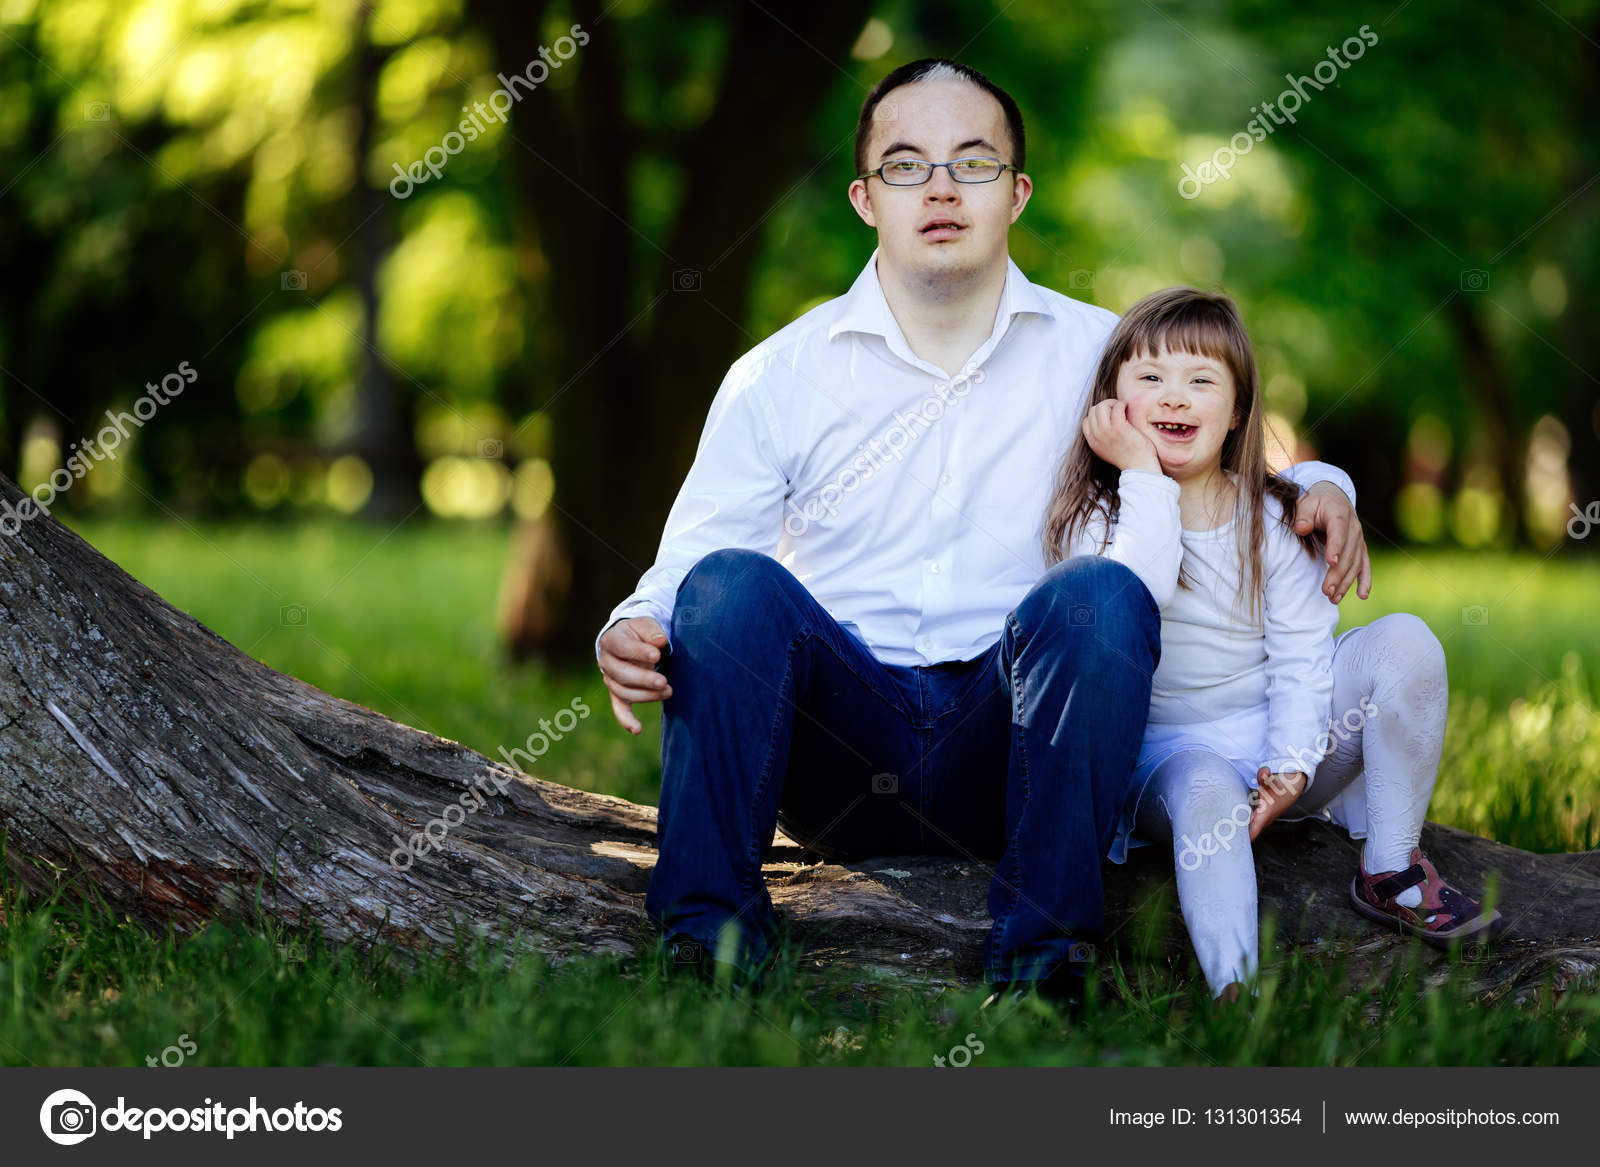 dating someone with down syndrome Attention deficit hyperactivity disorder, or adhd, is a commonly diagnosed childhood problem adhd is characterized by consistent demonstration of the following traits: decreased attention span, impulsive behavior, and excessive fidgeting or other nondirected motor activity.